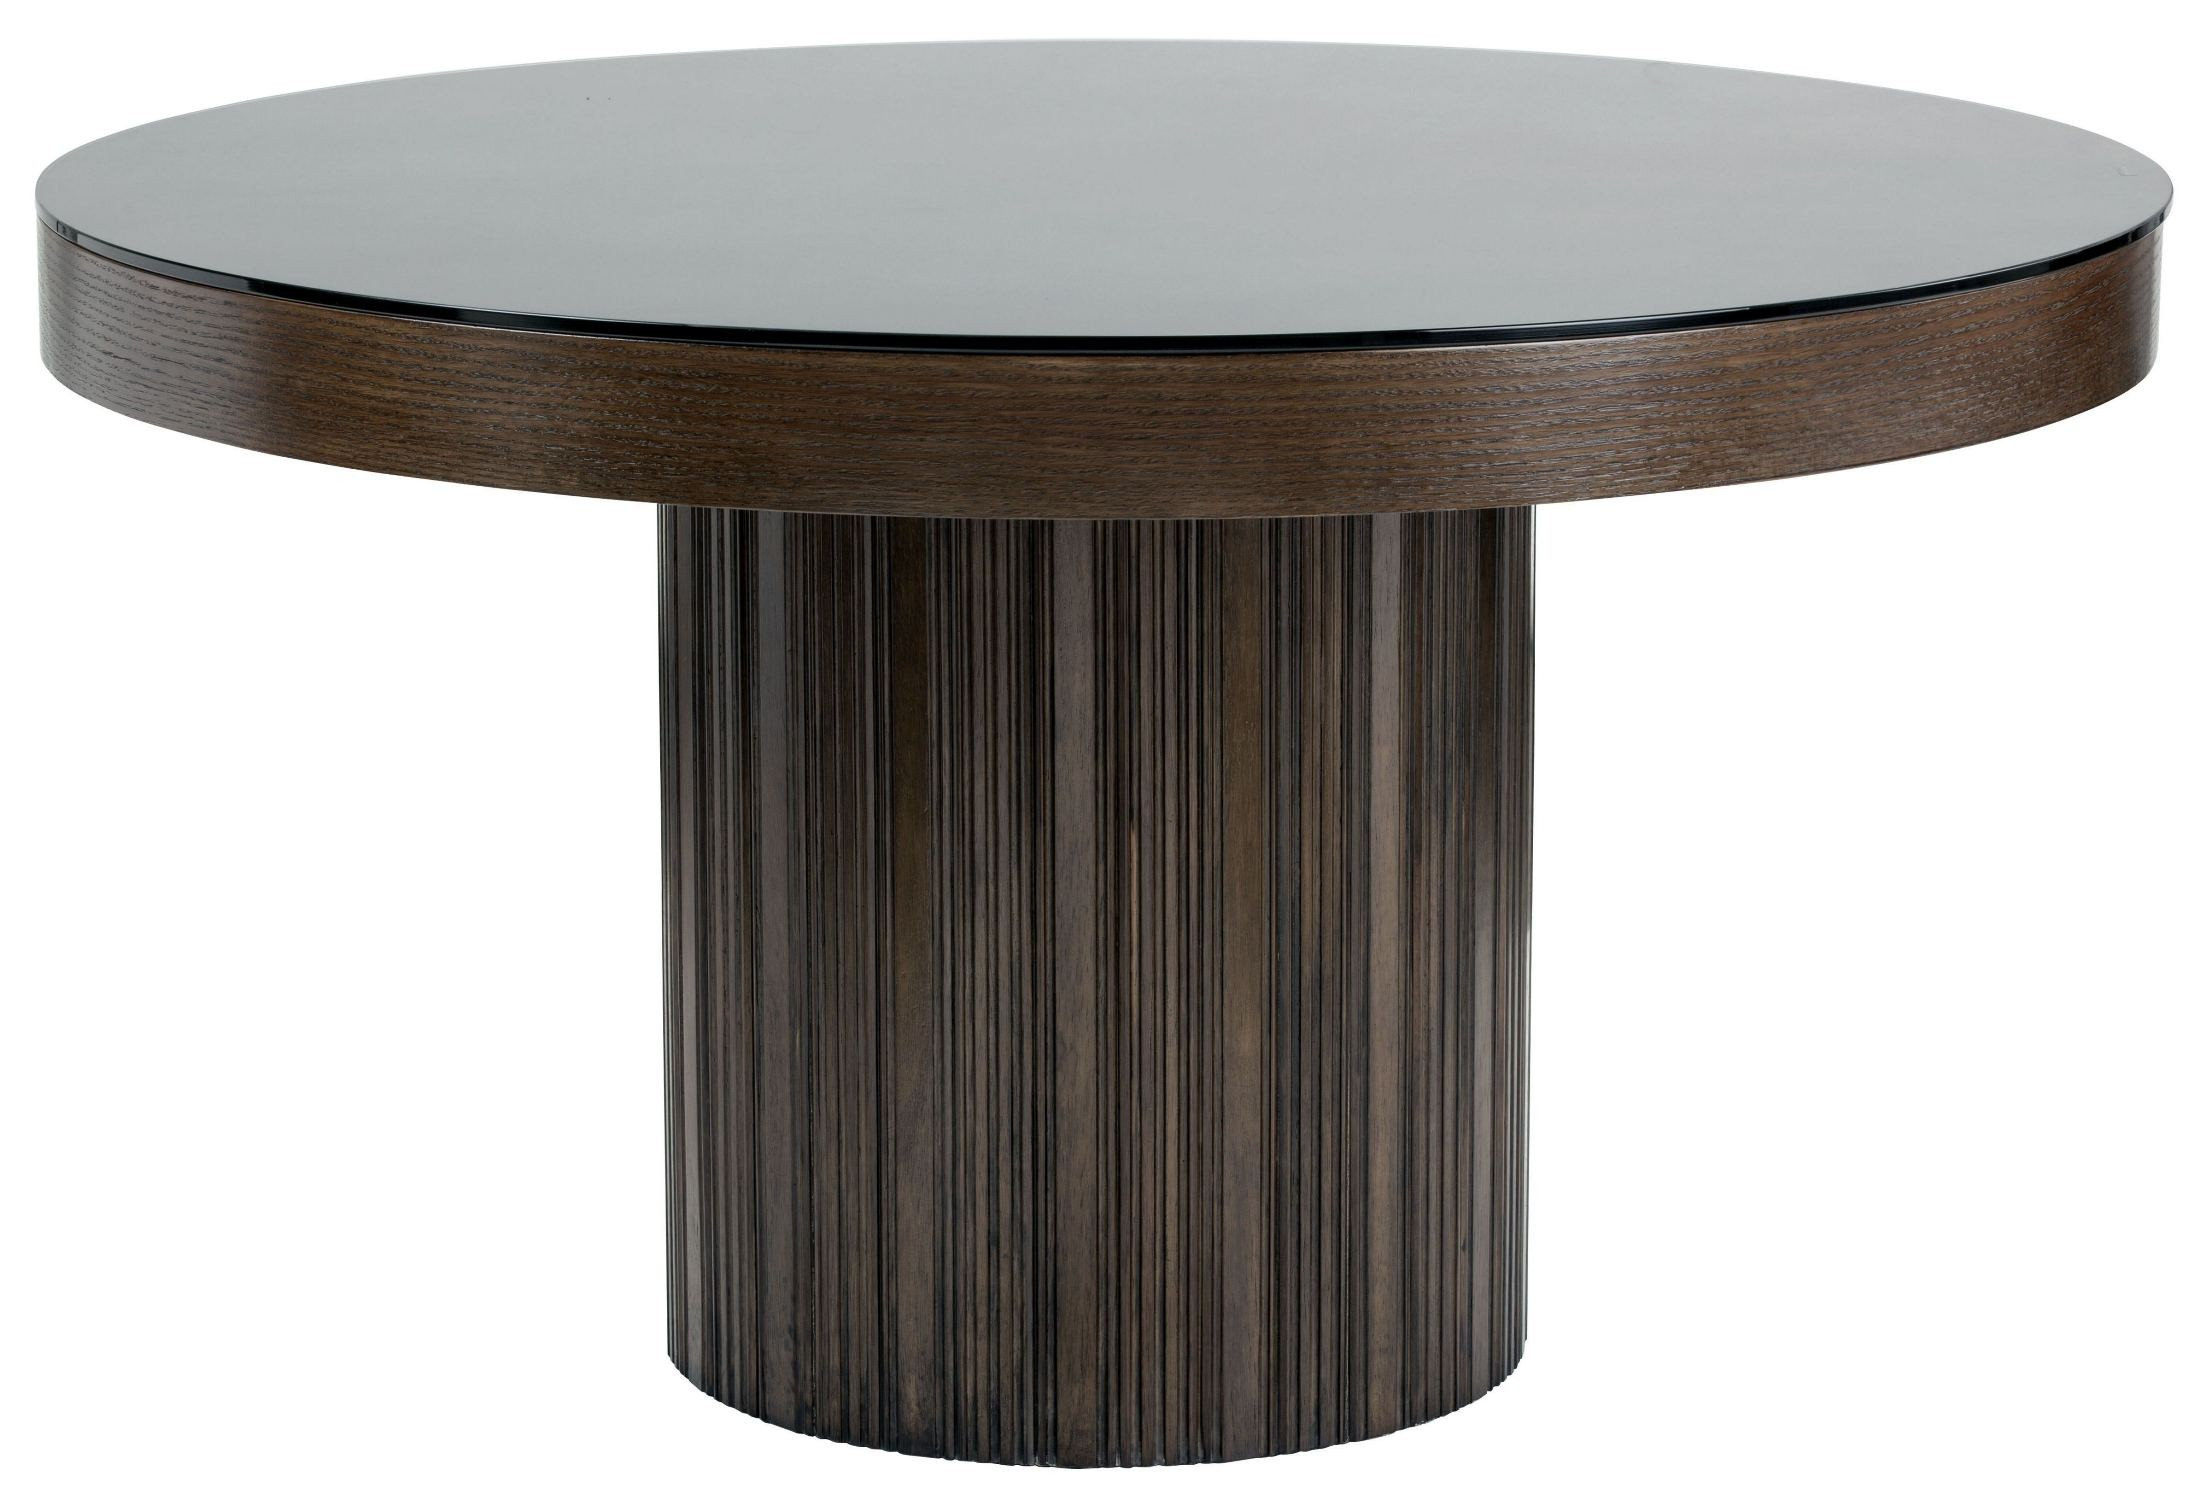 jakarta round black glass top dining table from sunpan coleman furniture. Black Bedroom Furniture Sets. Home Design Ideas